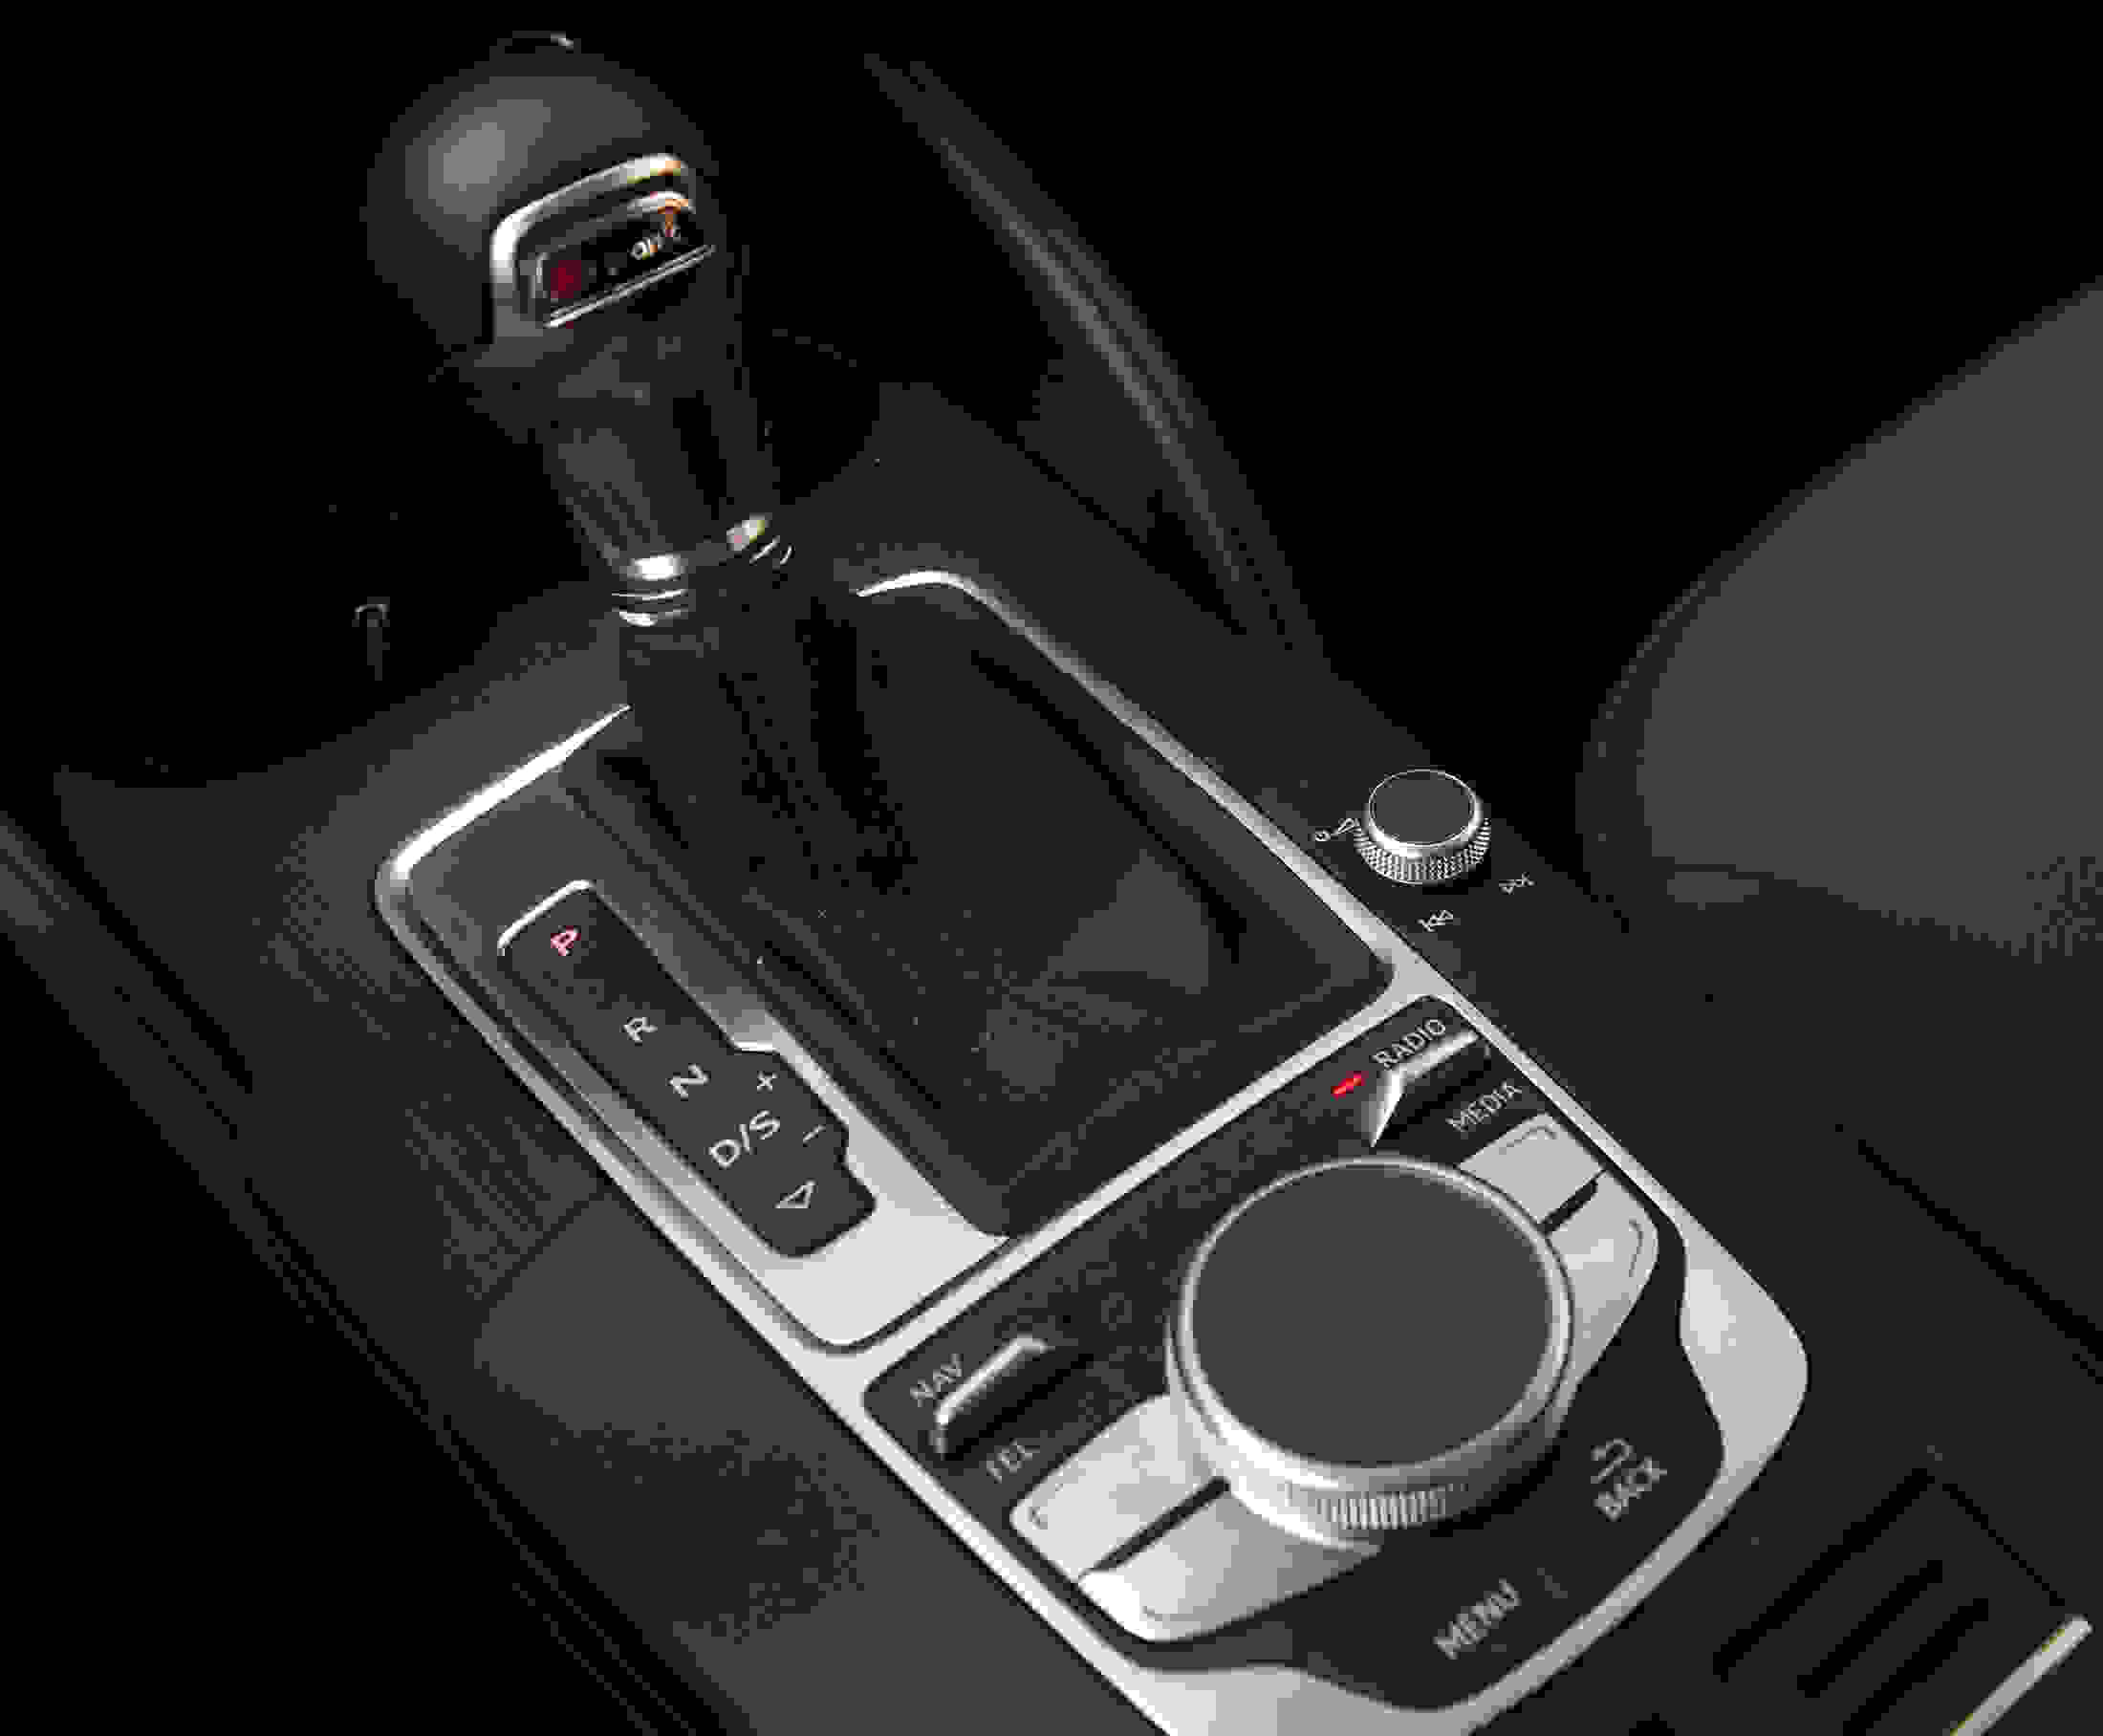 2015 Audi A3 shifter and MMI touchpad